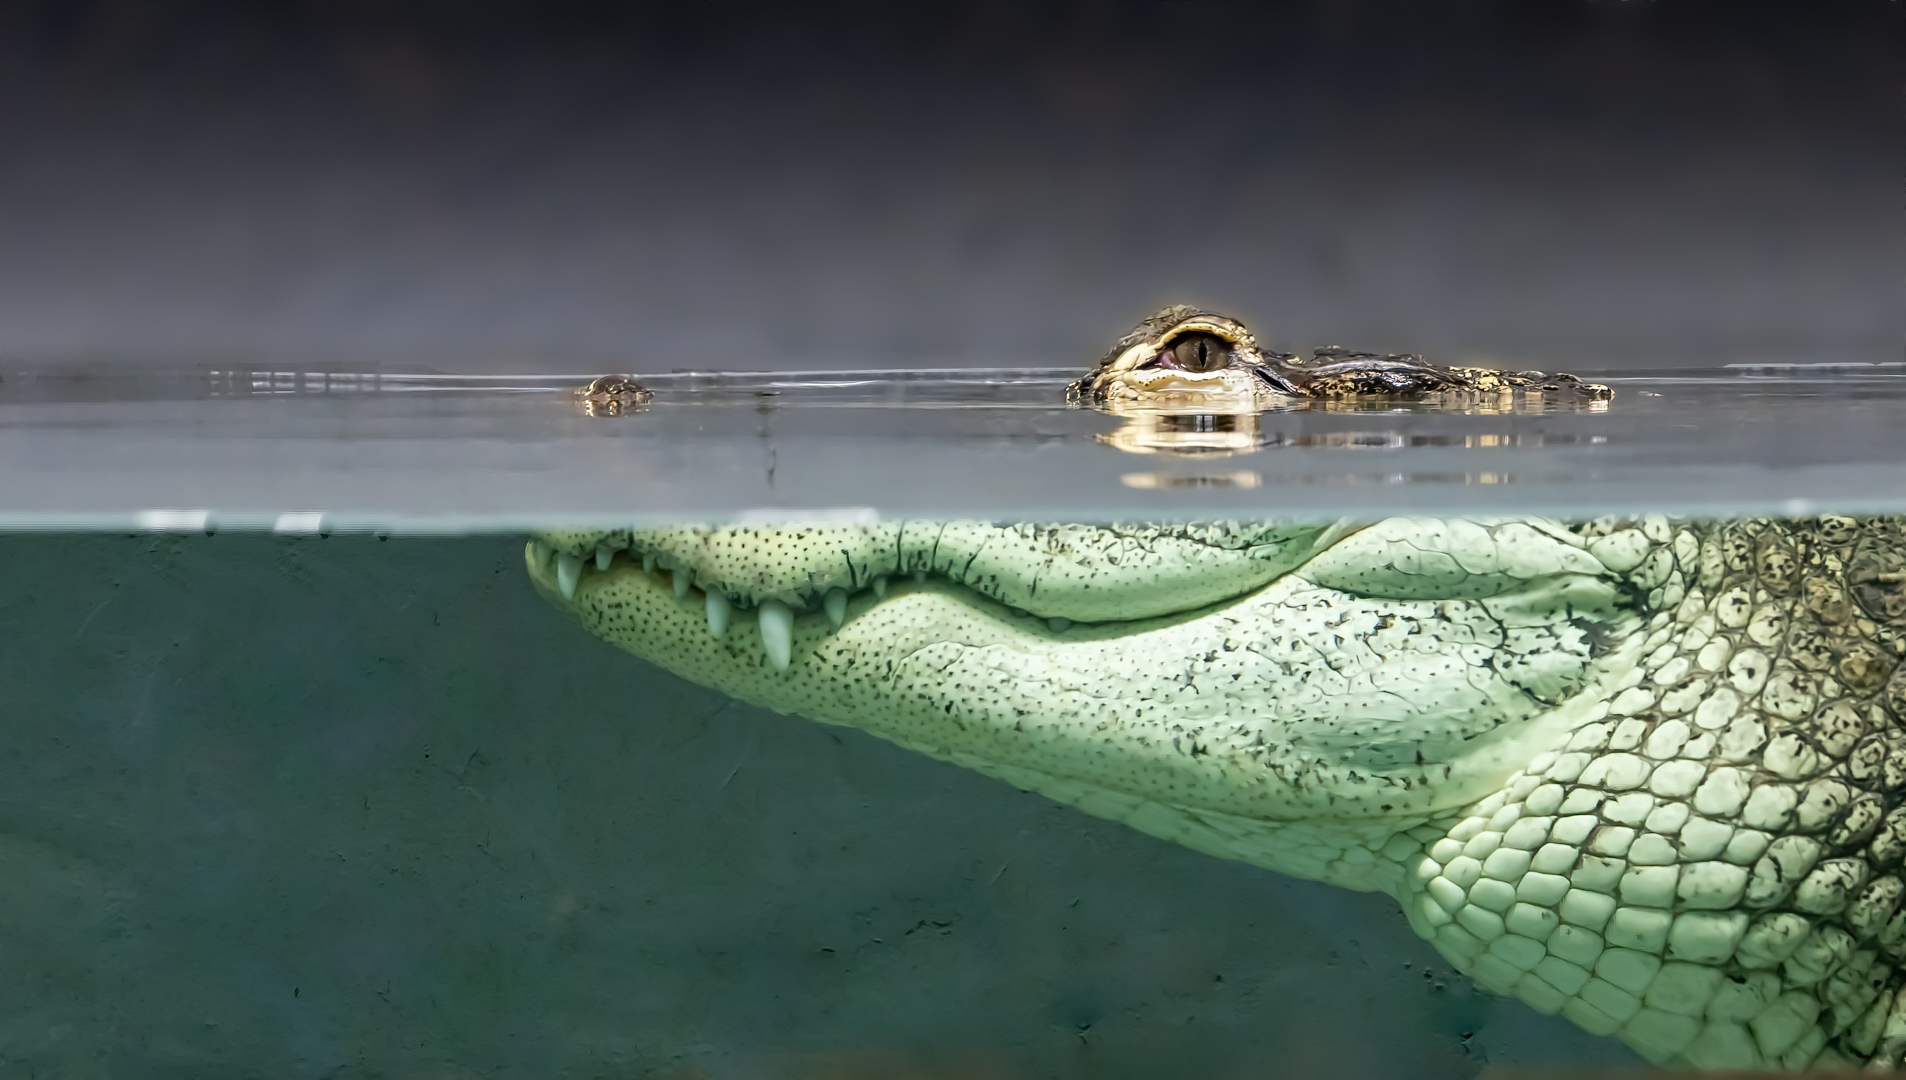 Alligator - what lurks below the surface